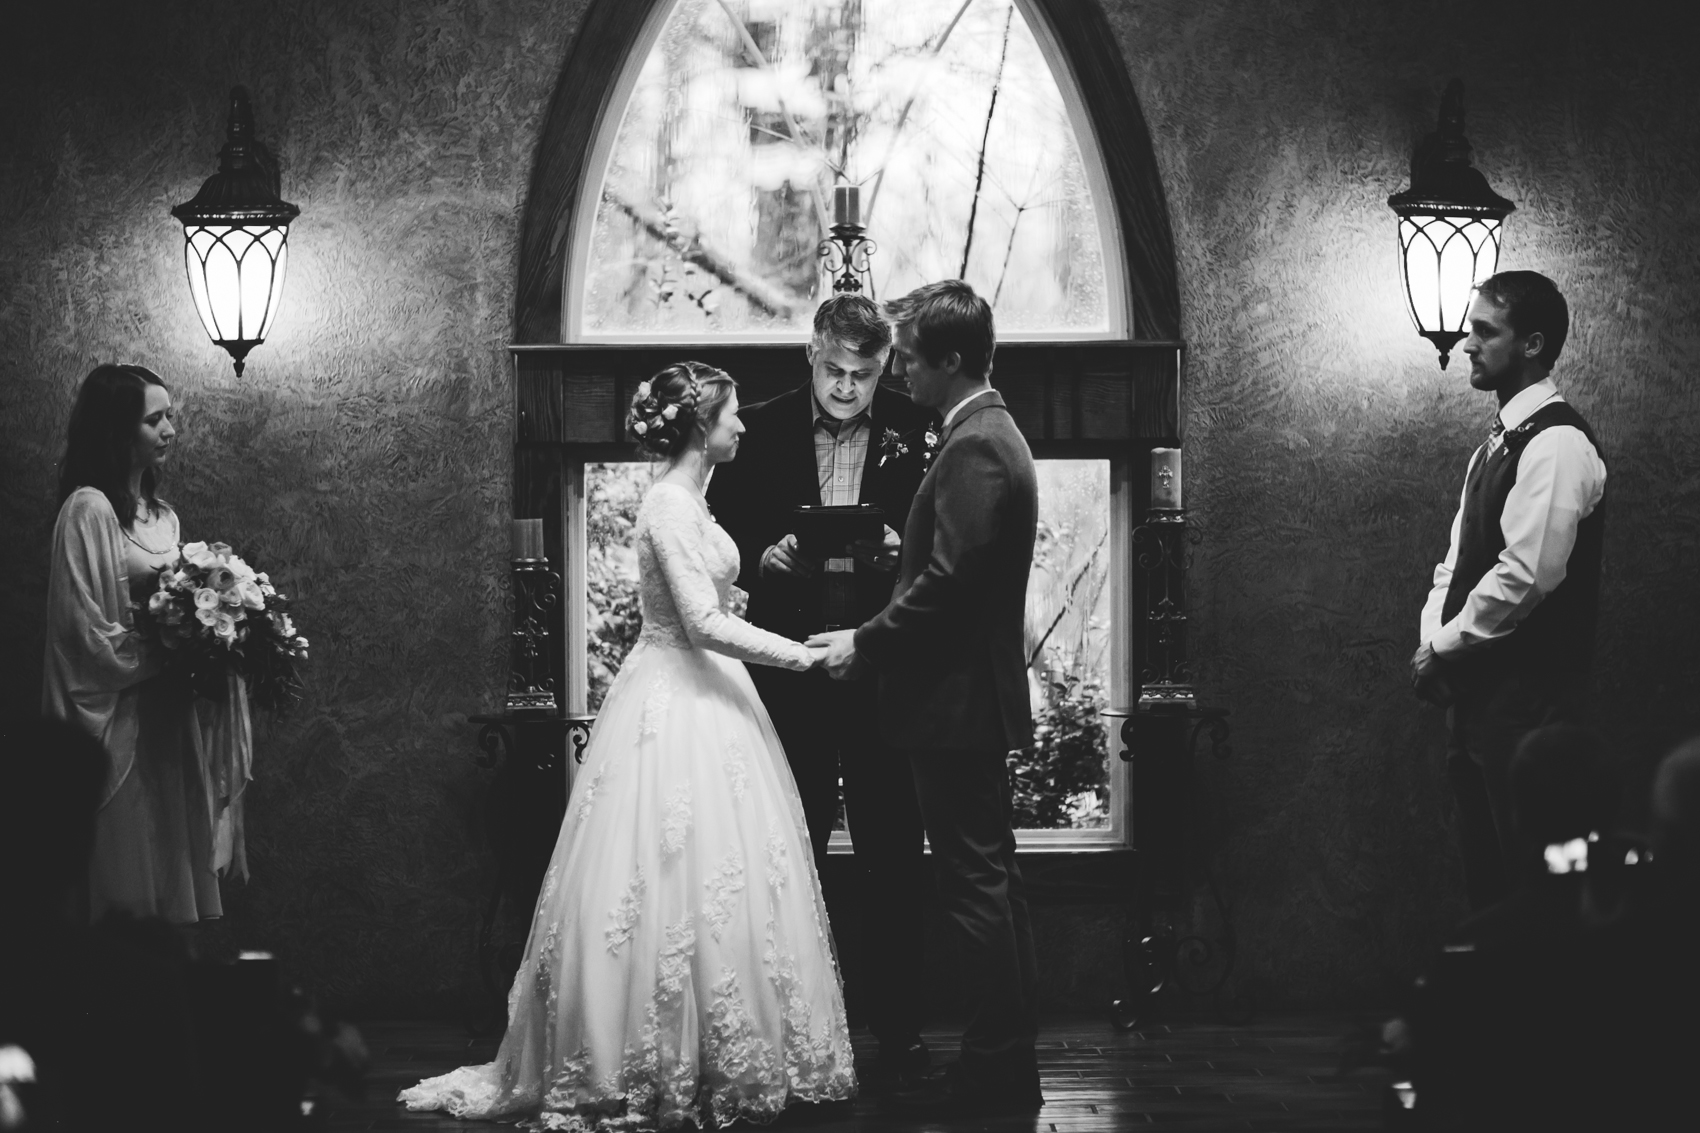 Cameron&ErinsWedding12-27-15-47